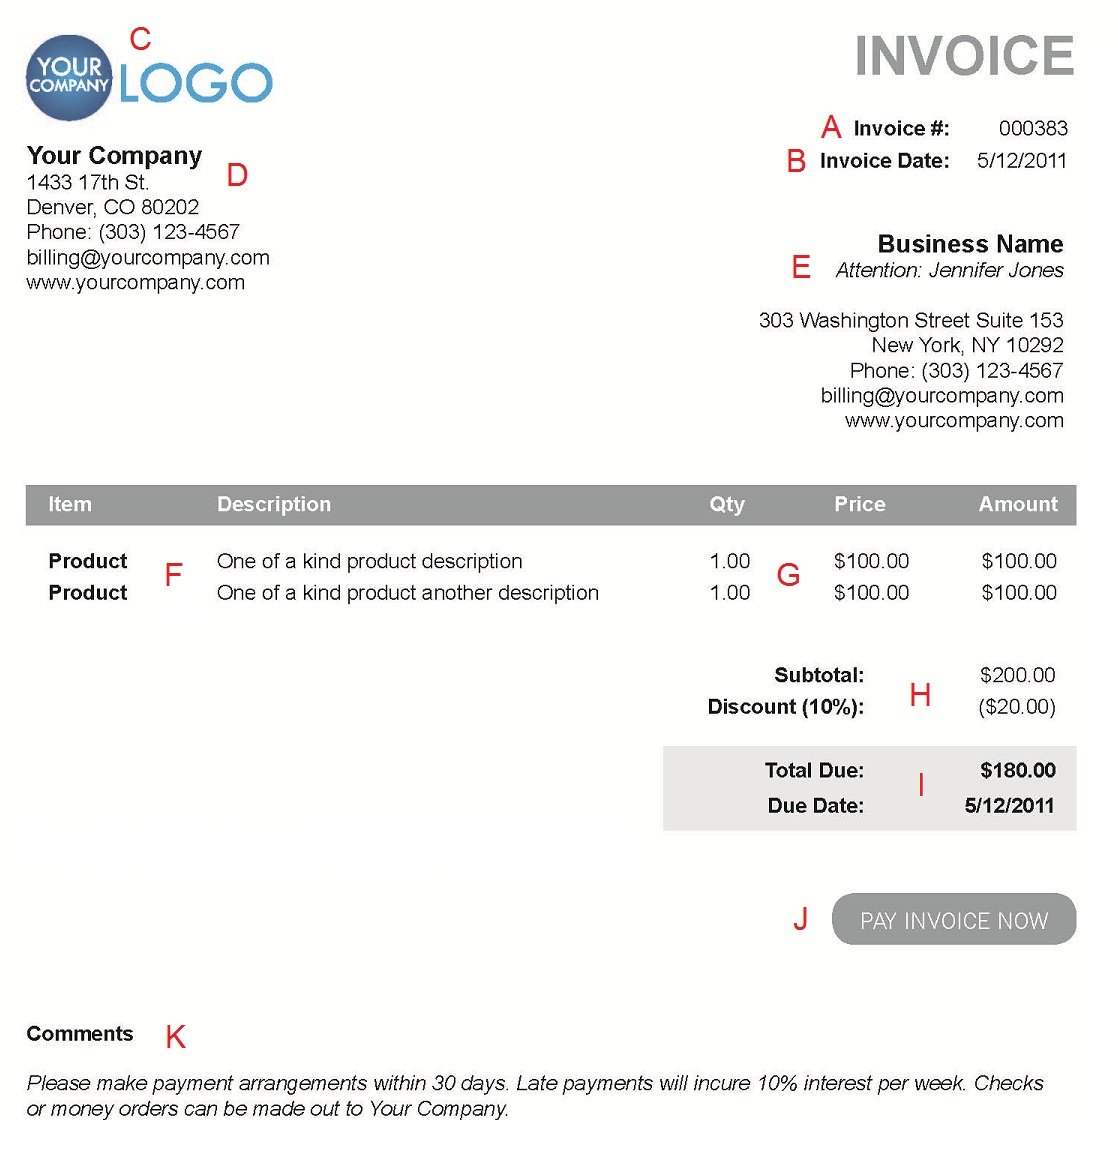 Reliefworkersus  Pleasing The  Different Sections Of An Electronic Payment Invoice With Likable A  With Astounding Sample Plumbing Invoice Also How To Buy A Car Below Invoice In Addition Free Download Invoice And Free Invoice And Estimate Software As Well As Free Invoice Templates Word Additionally Invoice Quote From Paysimplecom With Reliefworkersus  Likable The  Different Sections Of An Electronic Payment Invoice With Astounding A  And Pleasing Sample Plumbing Invoice Also How To Buy A Car Below Invoice In Addition Free Download Invoice From Paysimplecom